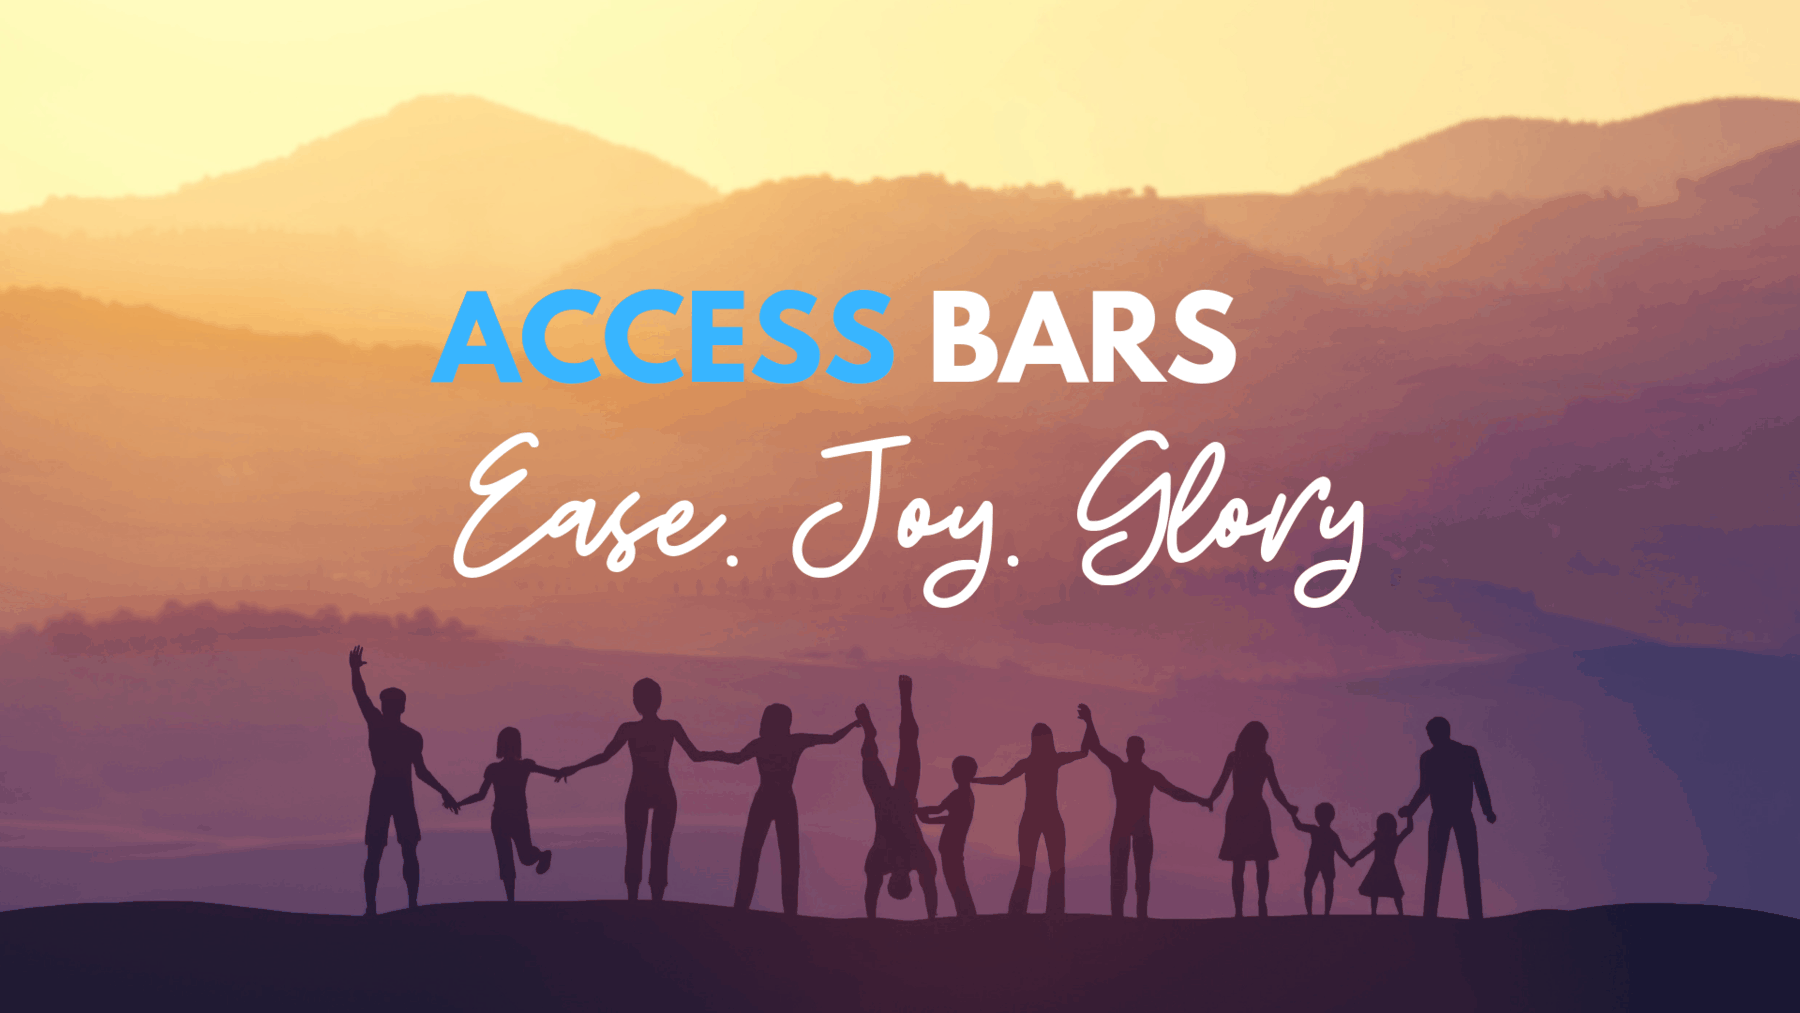 I OFFER ACCESS BARS LONDON WATERLOO EAST CROYDON